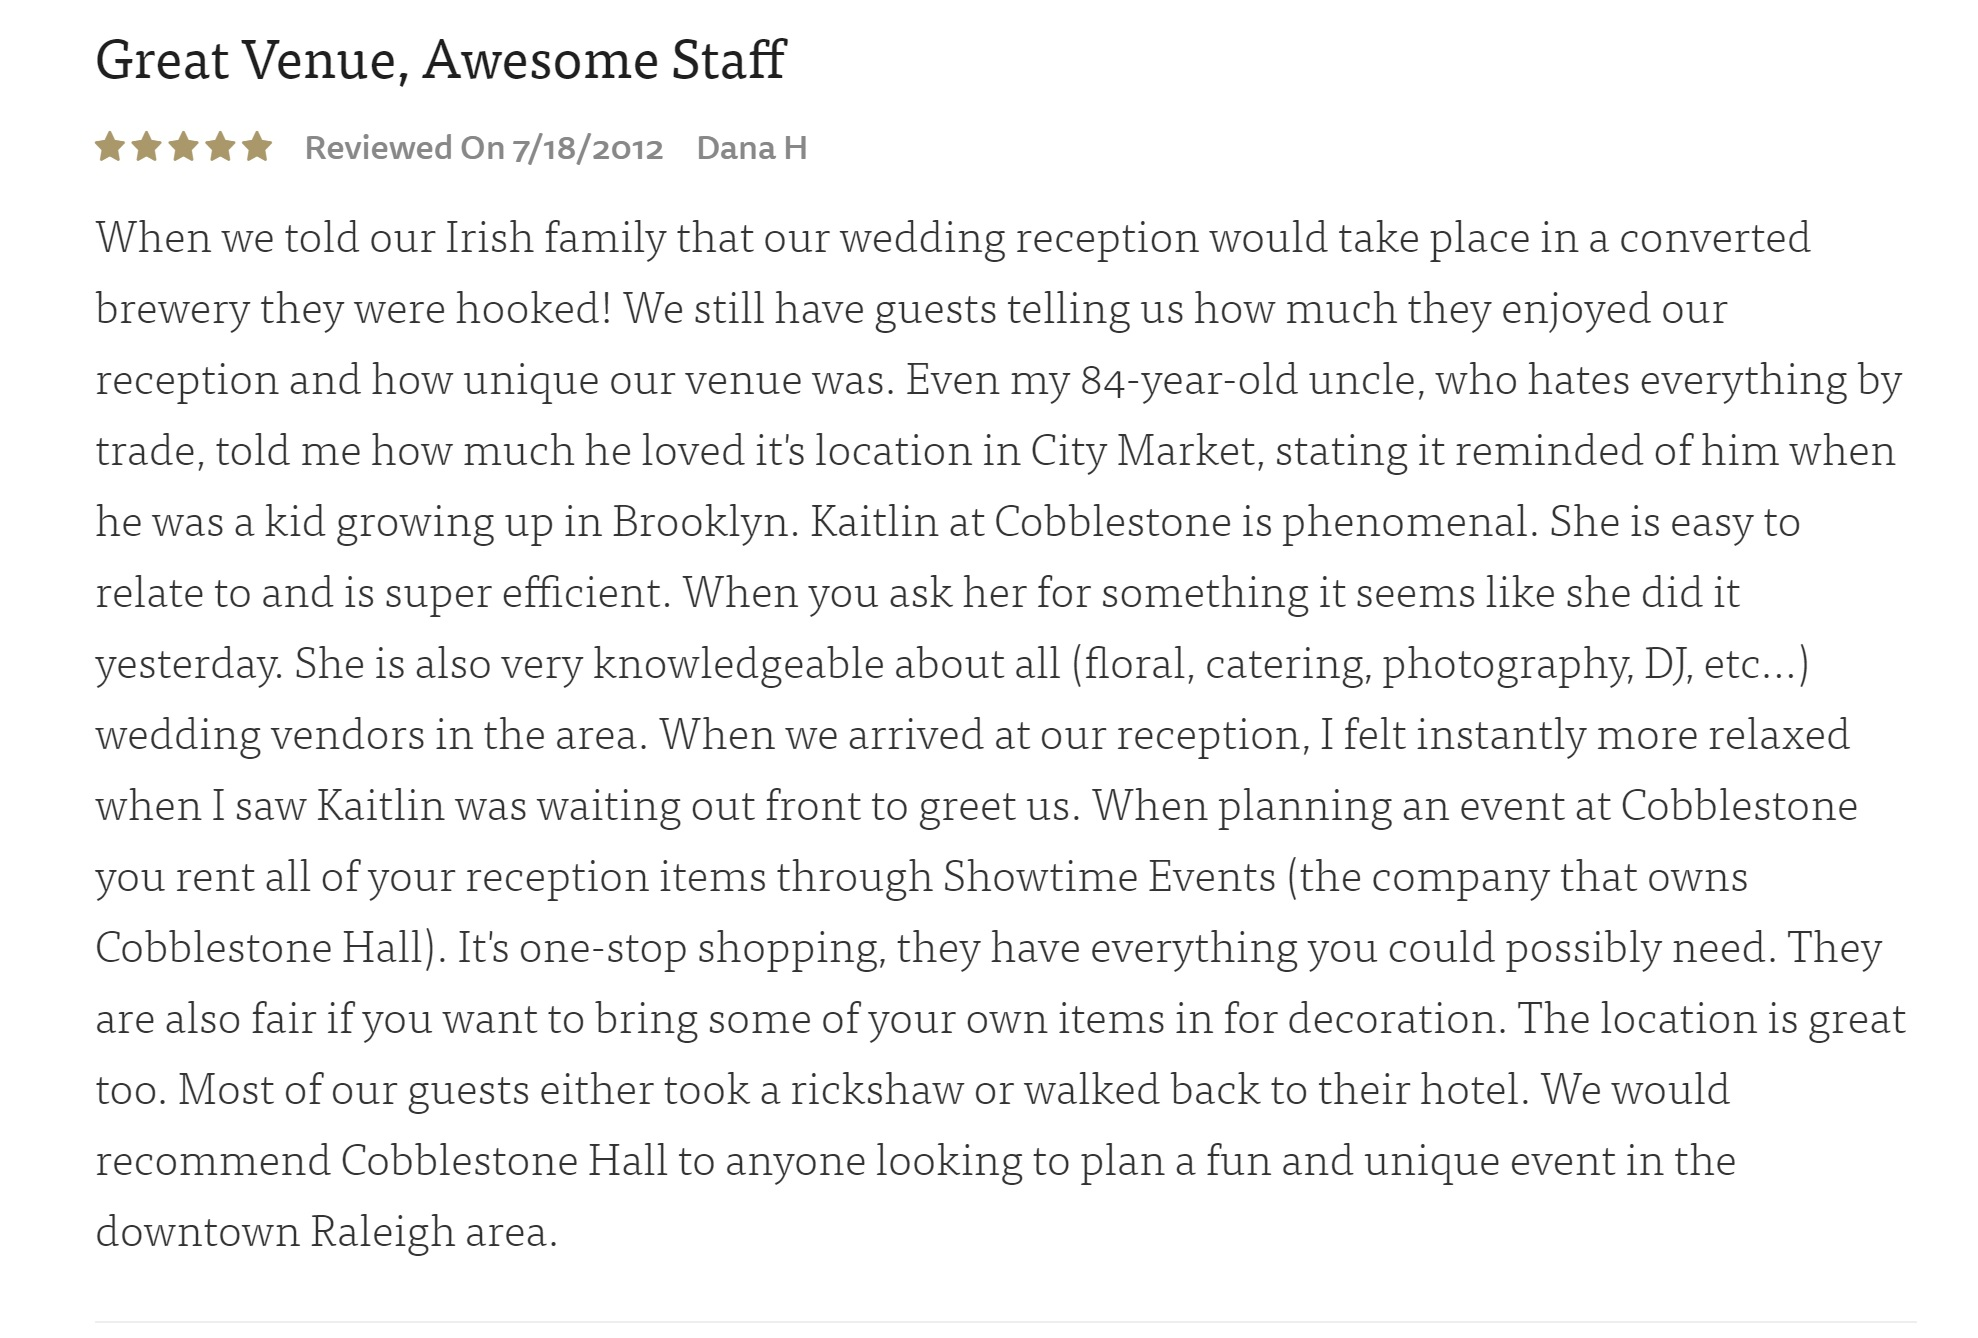 great venue awesome staff wedding review of cobblestone hall and kaitlin briggs stammetti